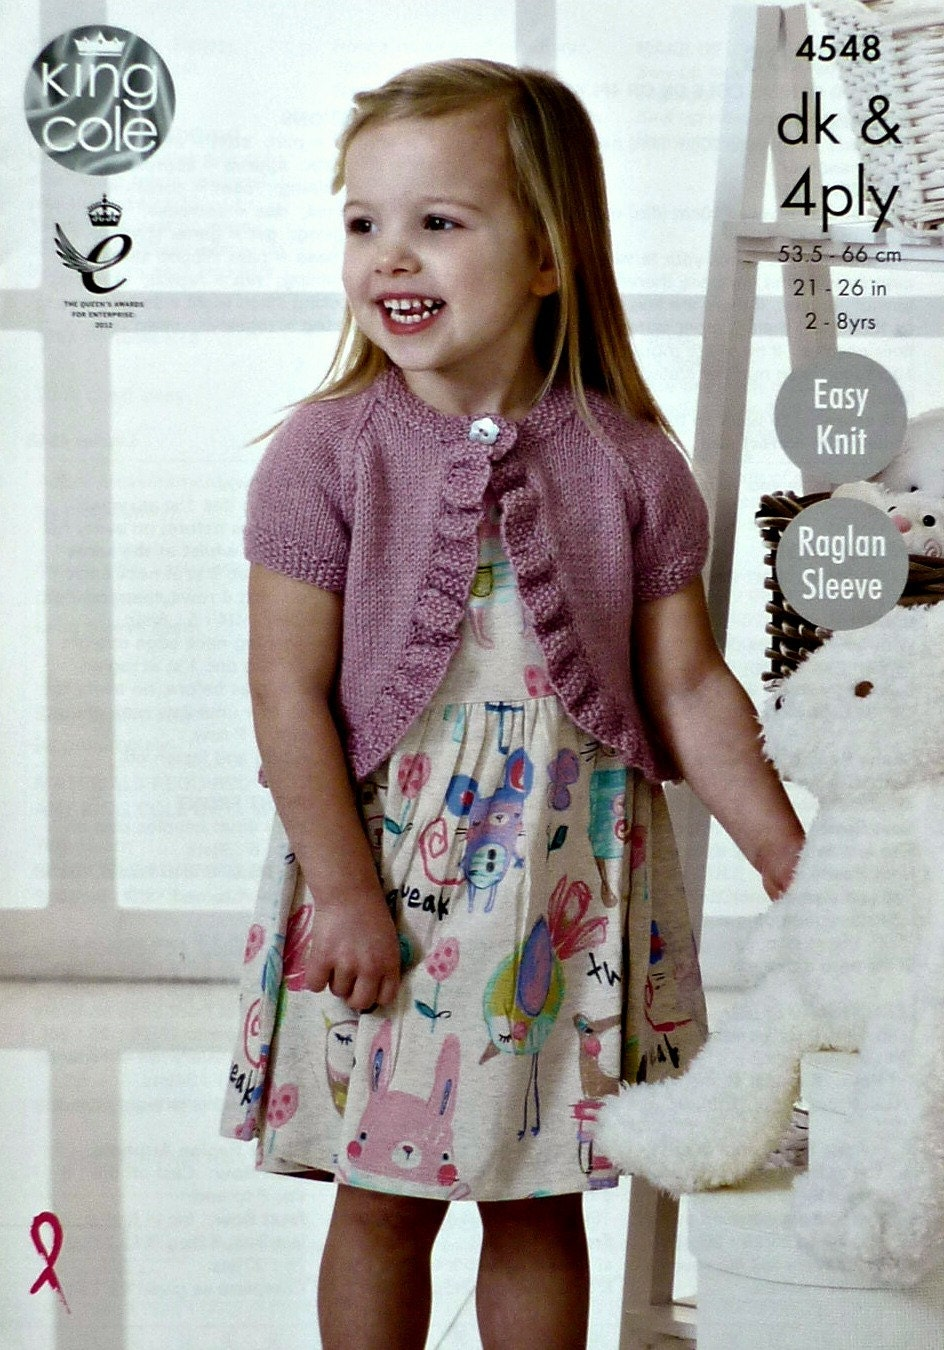 Girls Knitting Pattern K4548 Girls Easy Knit Short Sleeve Round Neck ...